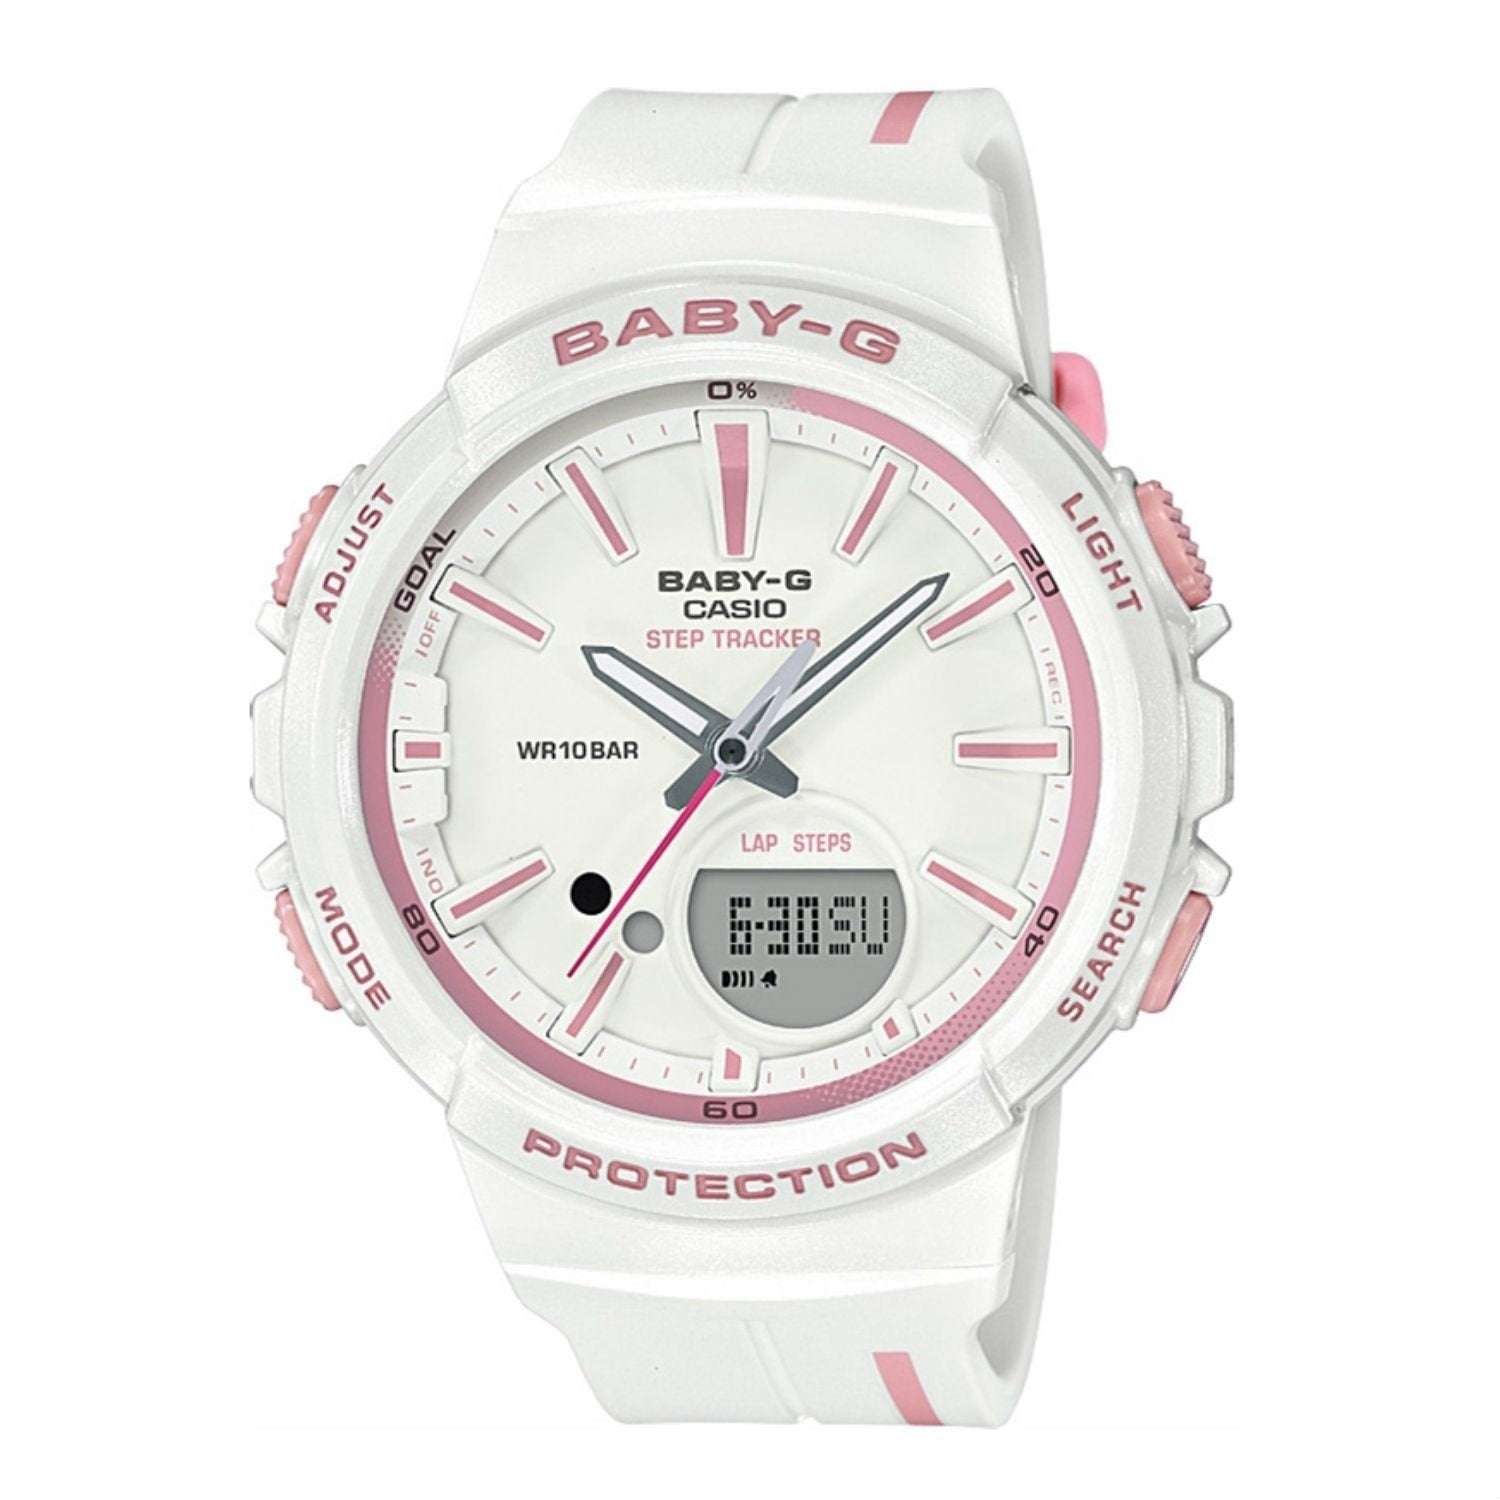 453feafbf Shop Casio Women's BGS100RT-7A 'Baby G' White Resin Watch - Free Shipping  Today - Overstock - 27623334